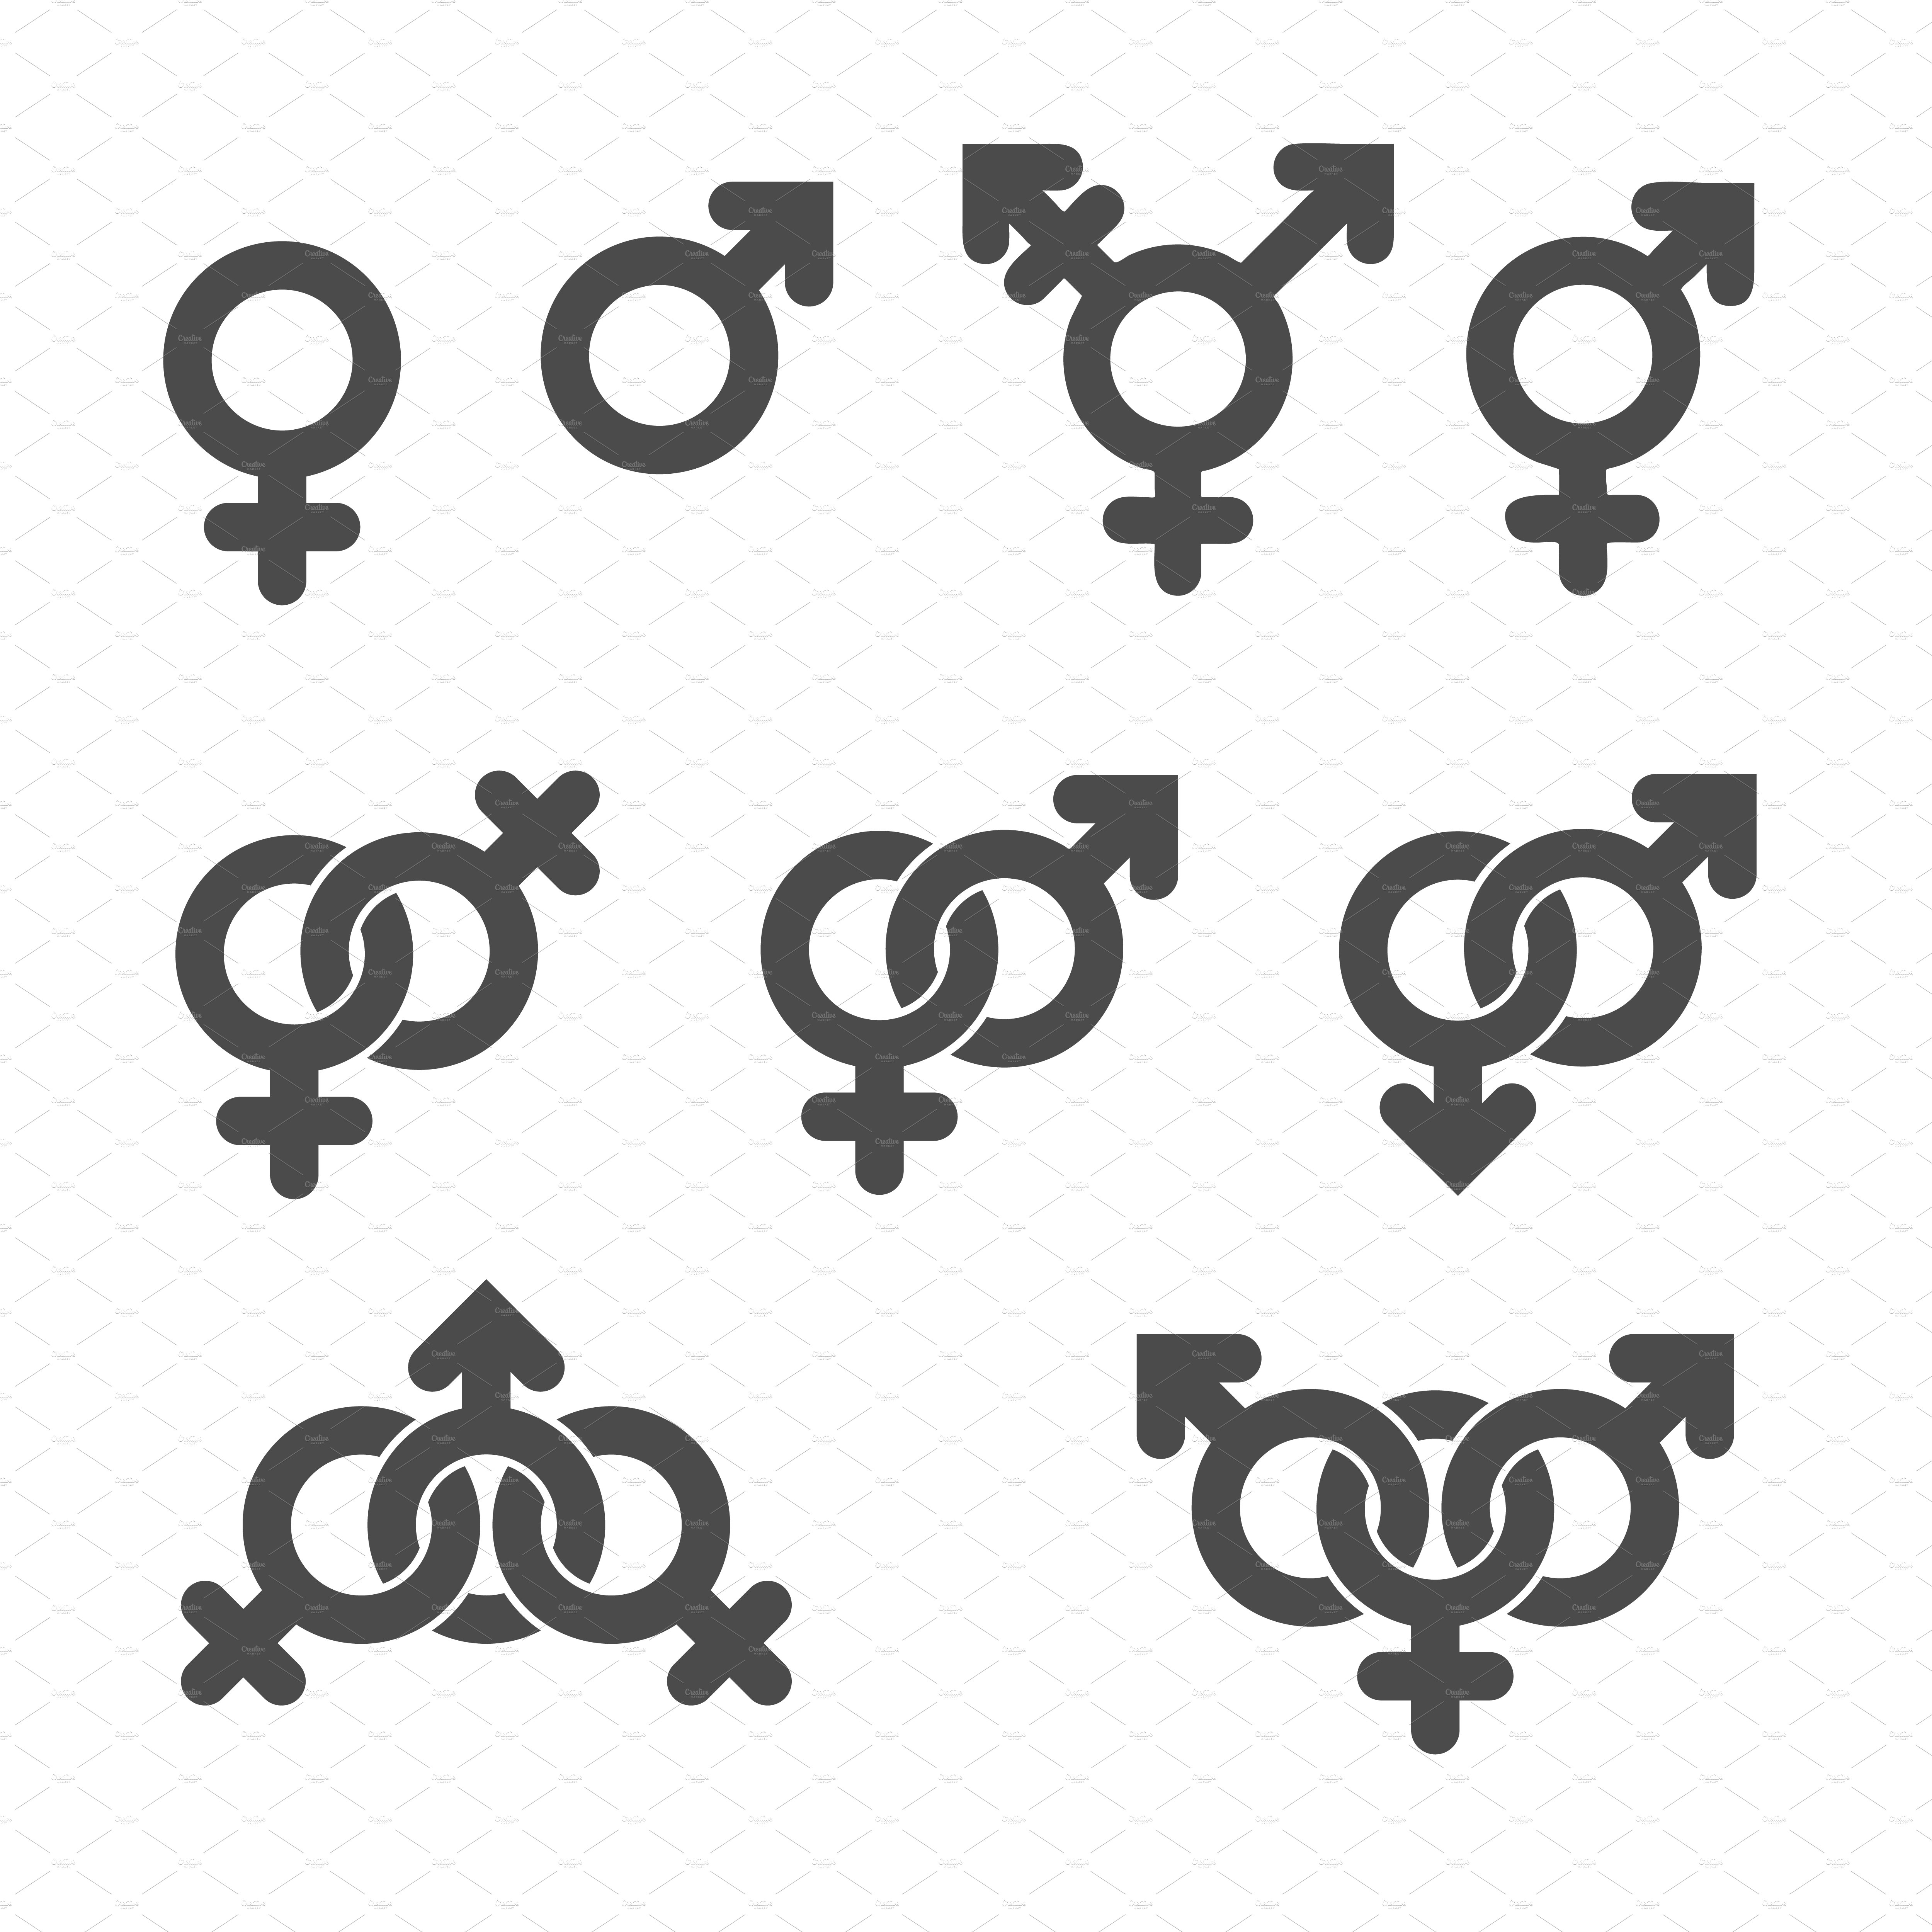 Gender Hieroglyphics | The Political Hat